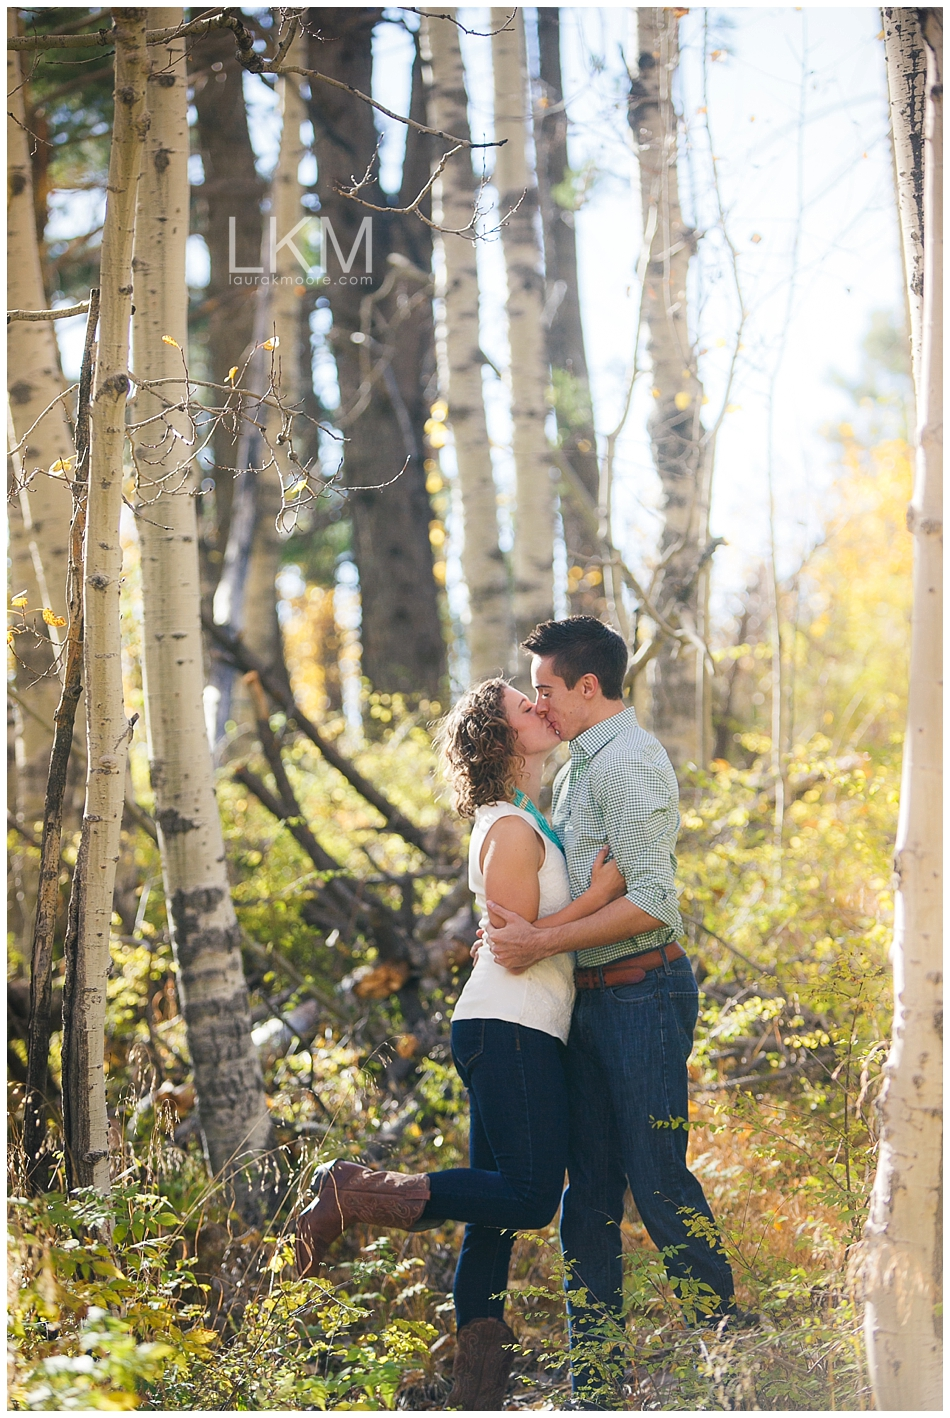 mt-lemon-engagement-session-tucson-wedding-photographer-austin-corrie_0012.jpg